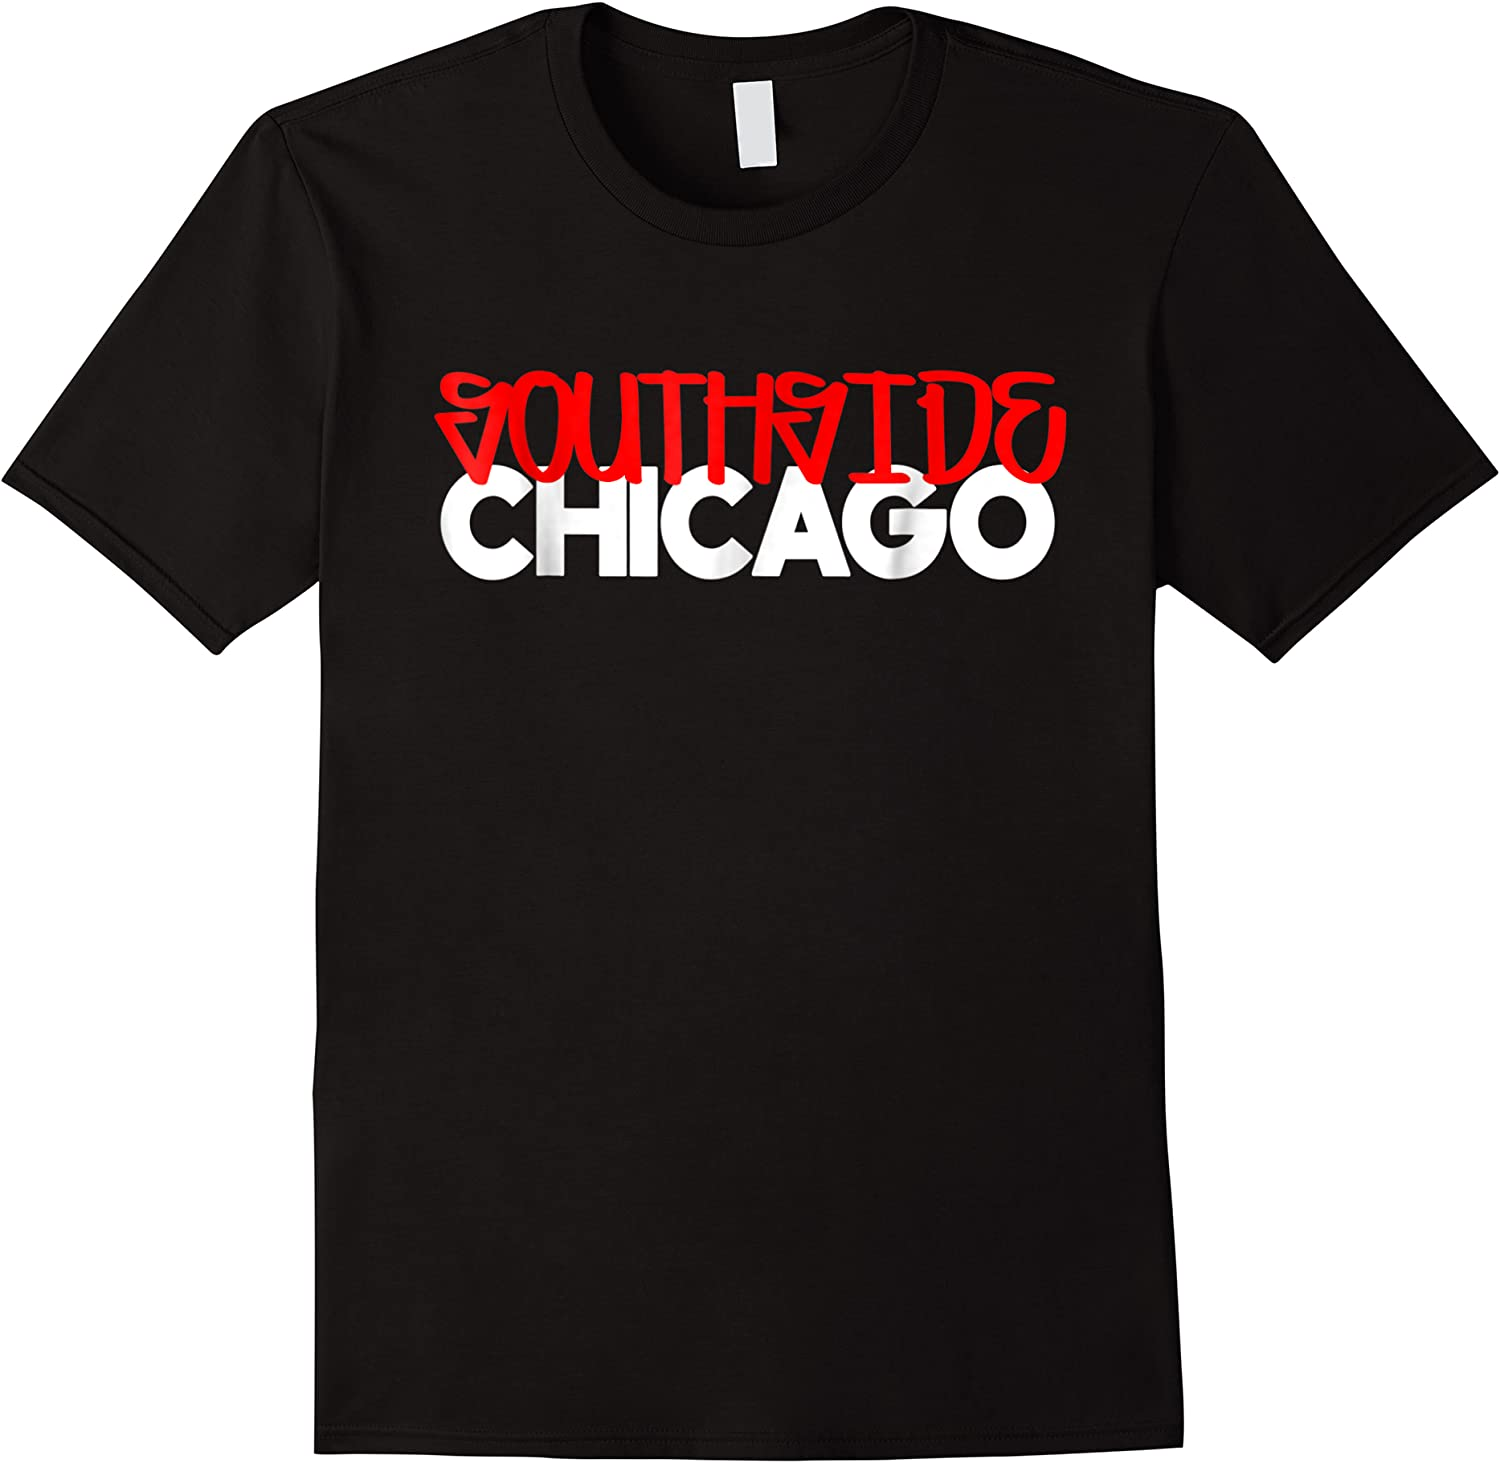 S S Chicago Shirts For | Southside Chi Shirt